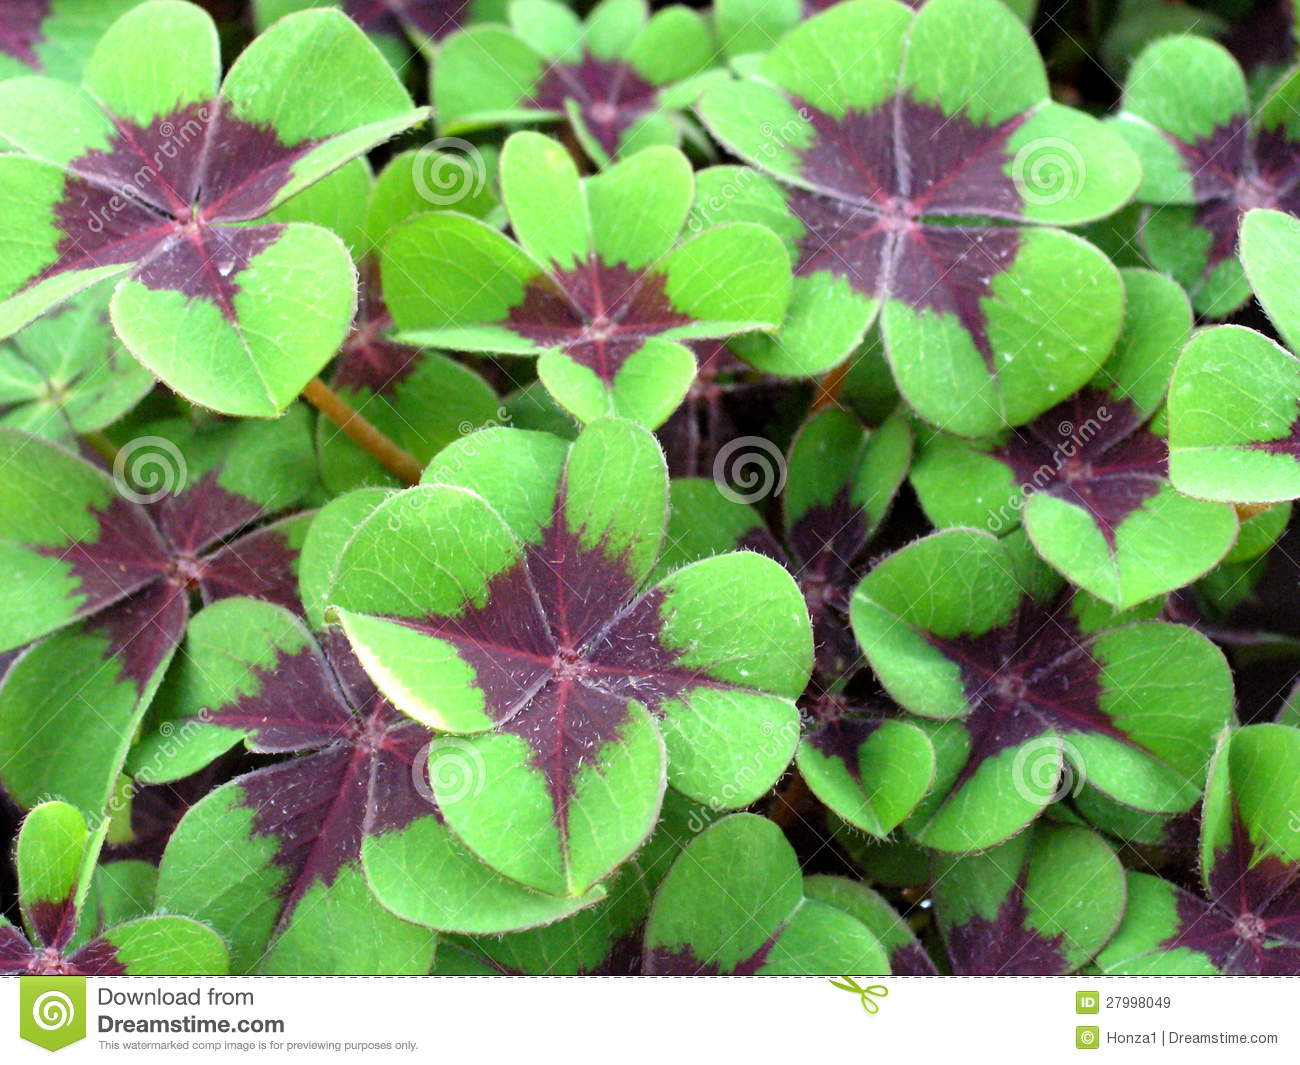 Oxalis Deppei Royalty Free Stock Images - Image: 27998049